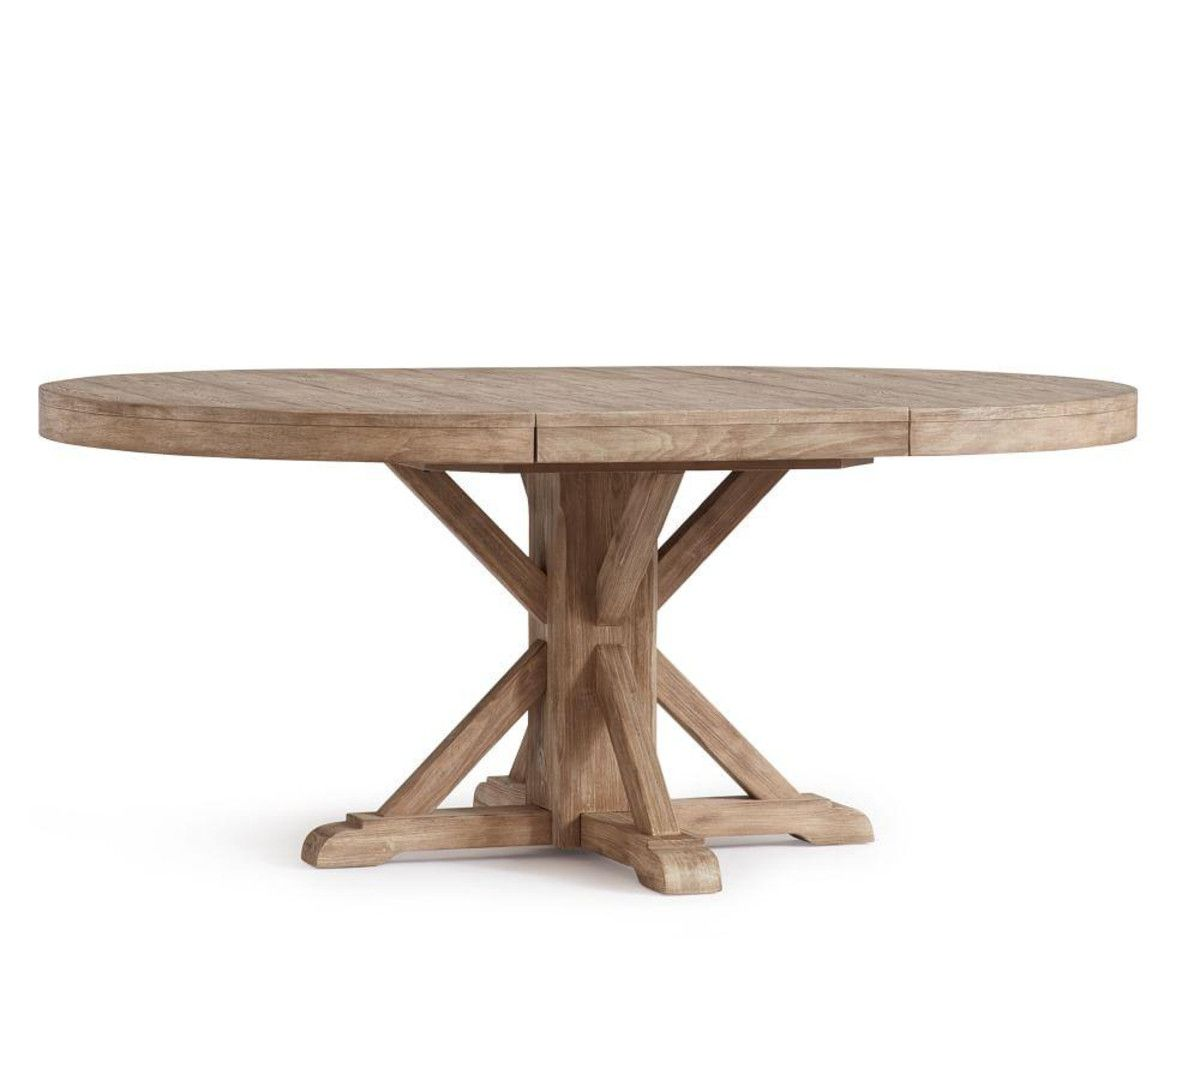 Benchwright Extending Round Table Seadrift 123 183 Cm